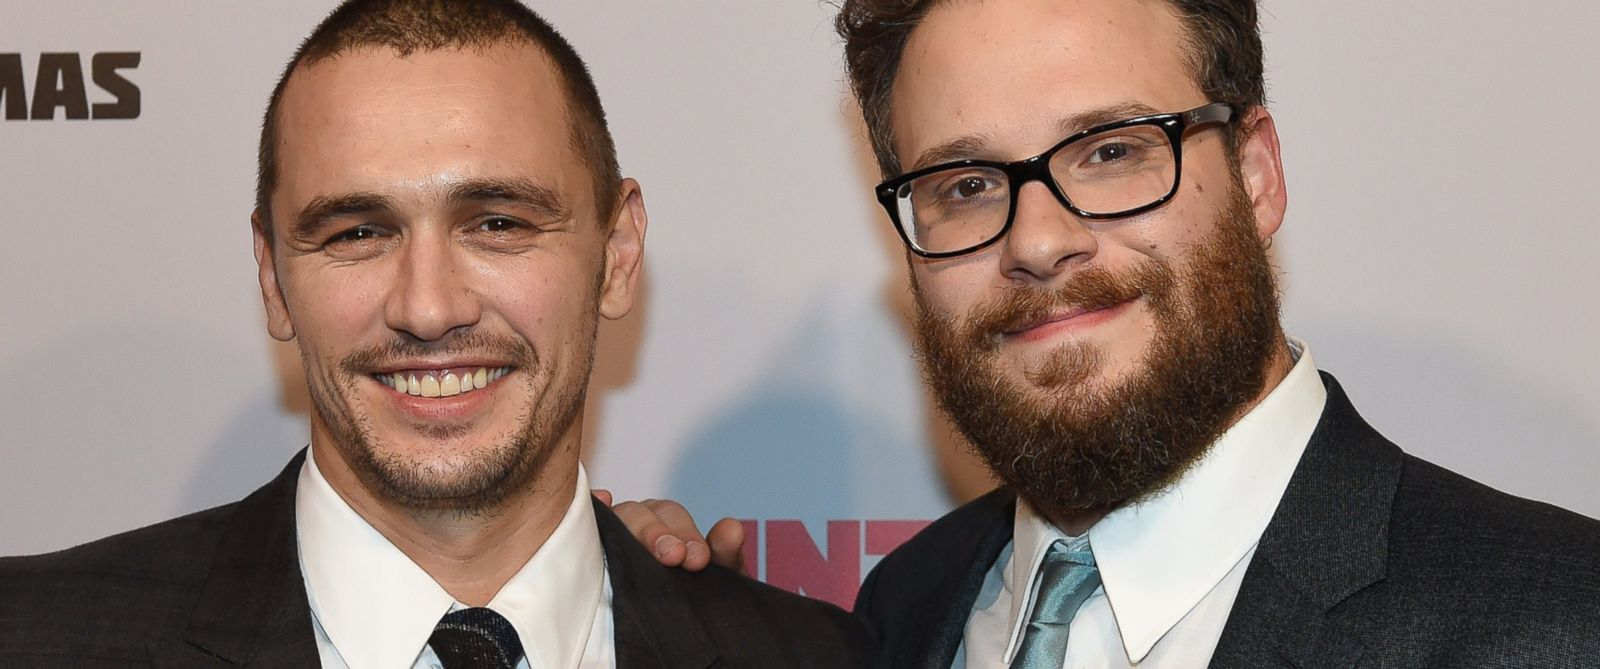 "PHOTO: James Franco and Seth Rogen arrive for the premiere of the film ""The Interview"""